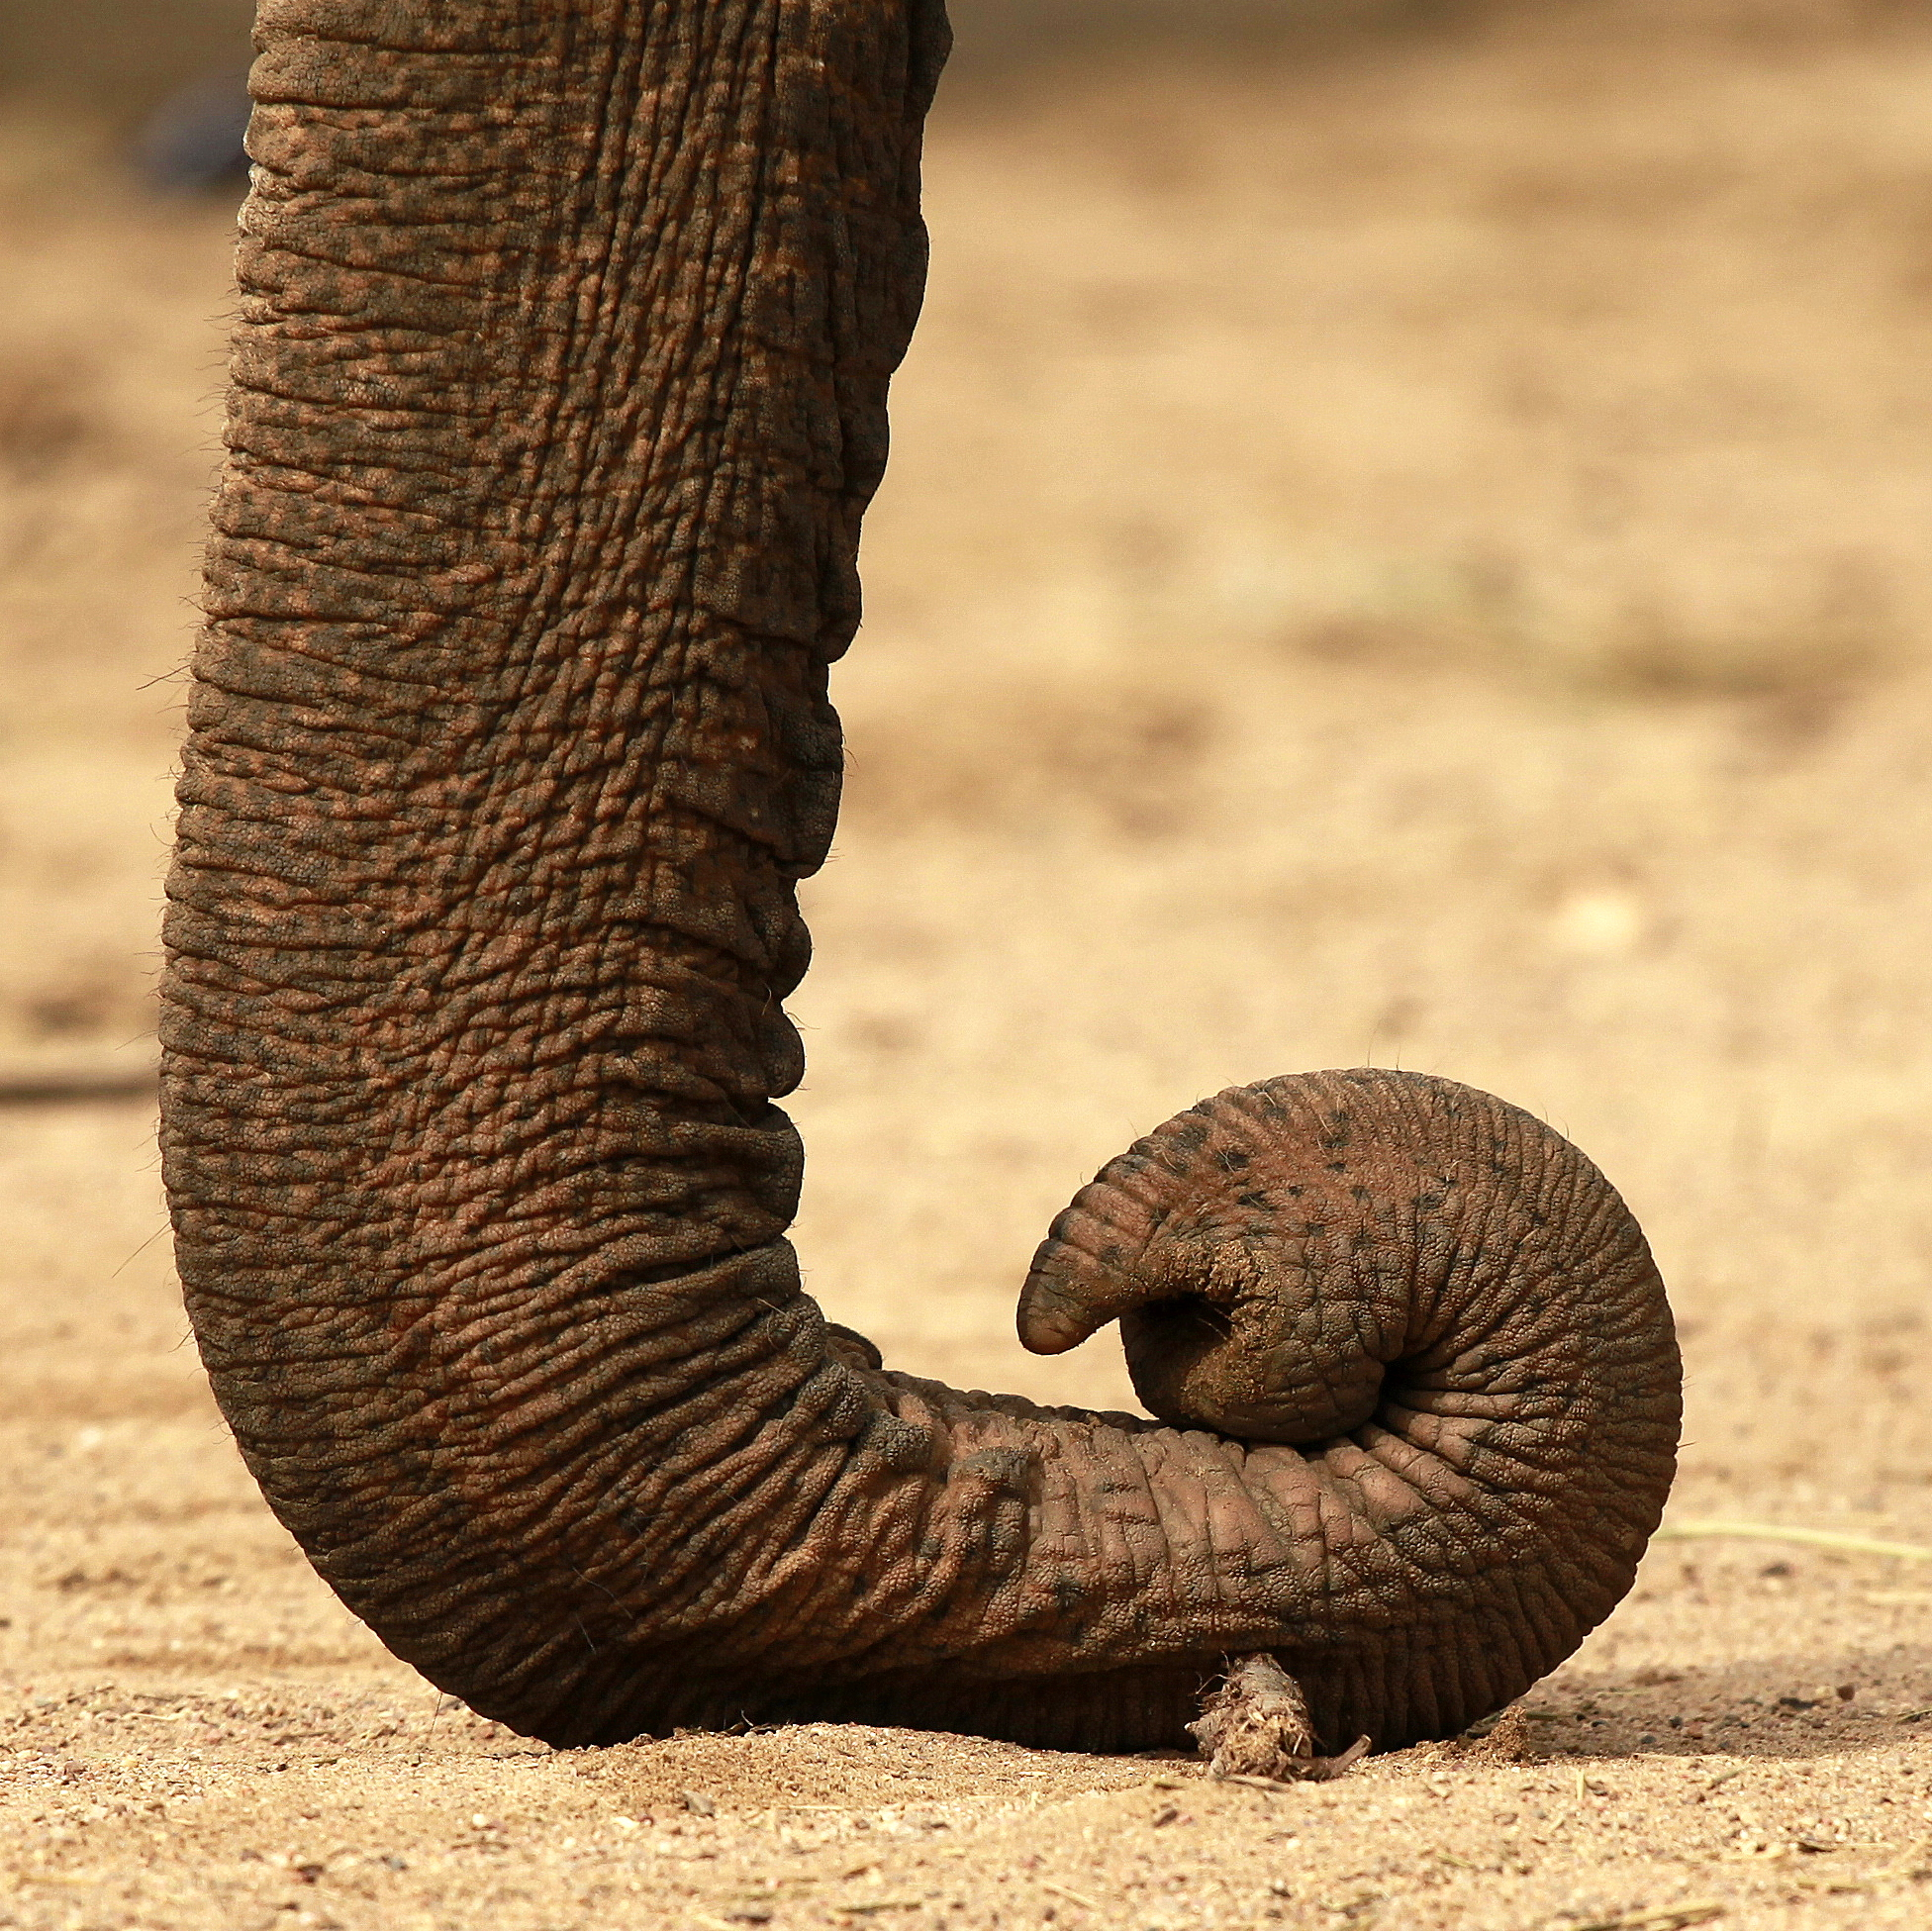 What for to an elephant a trunk